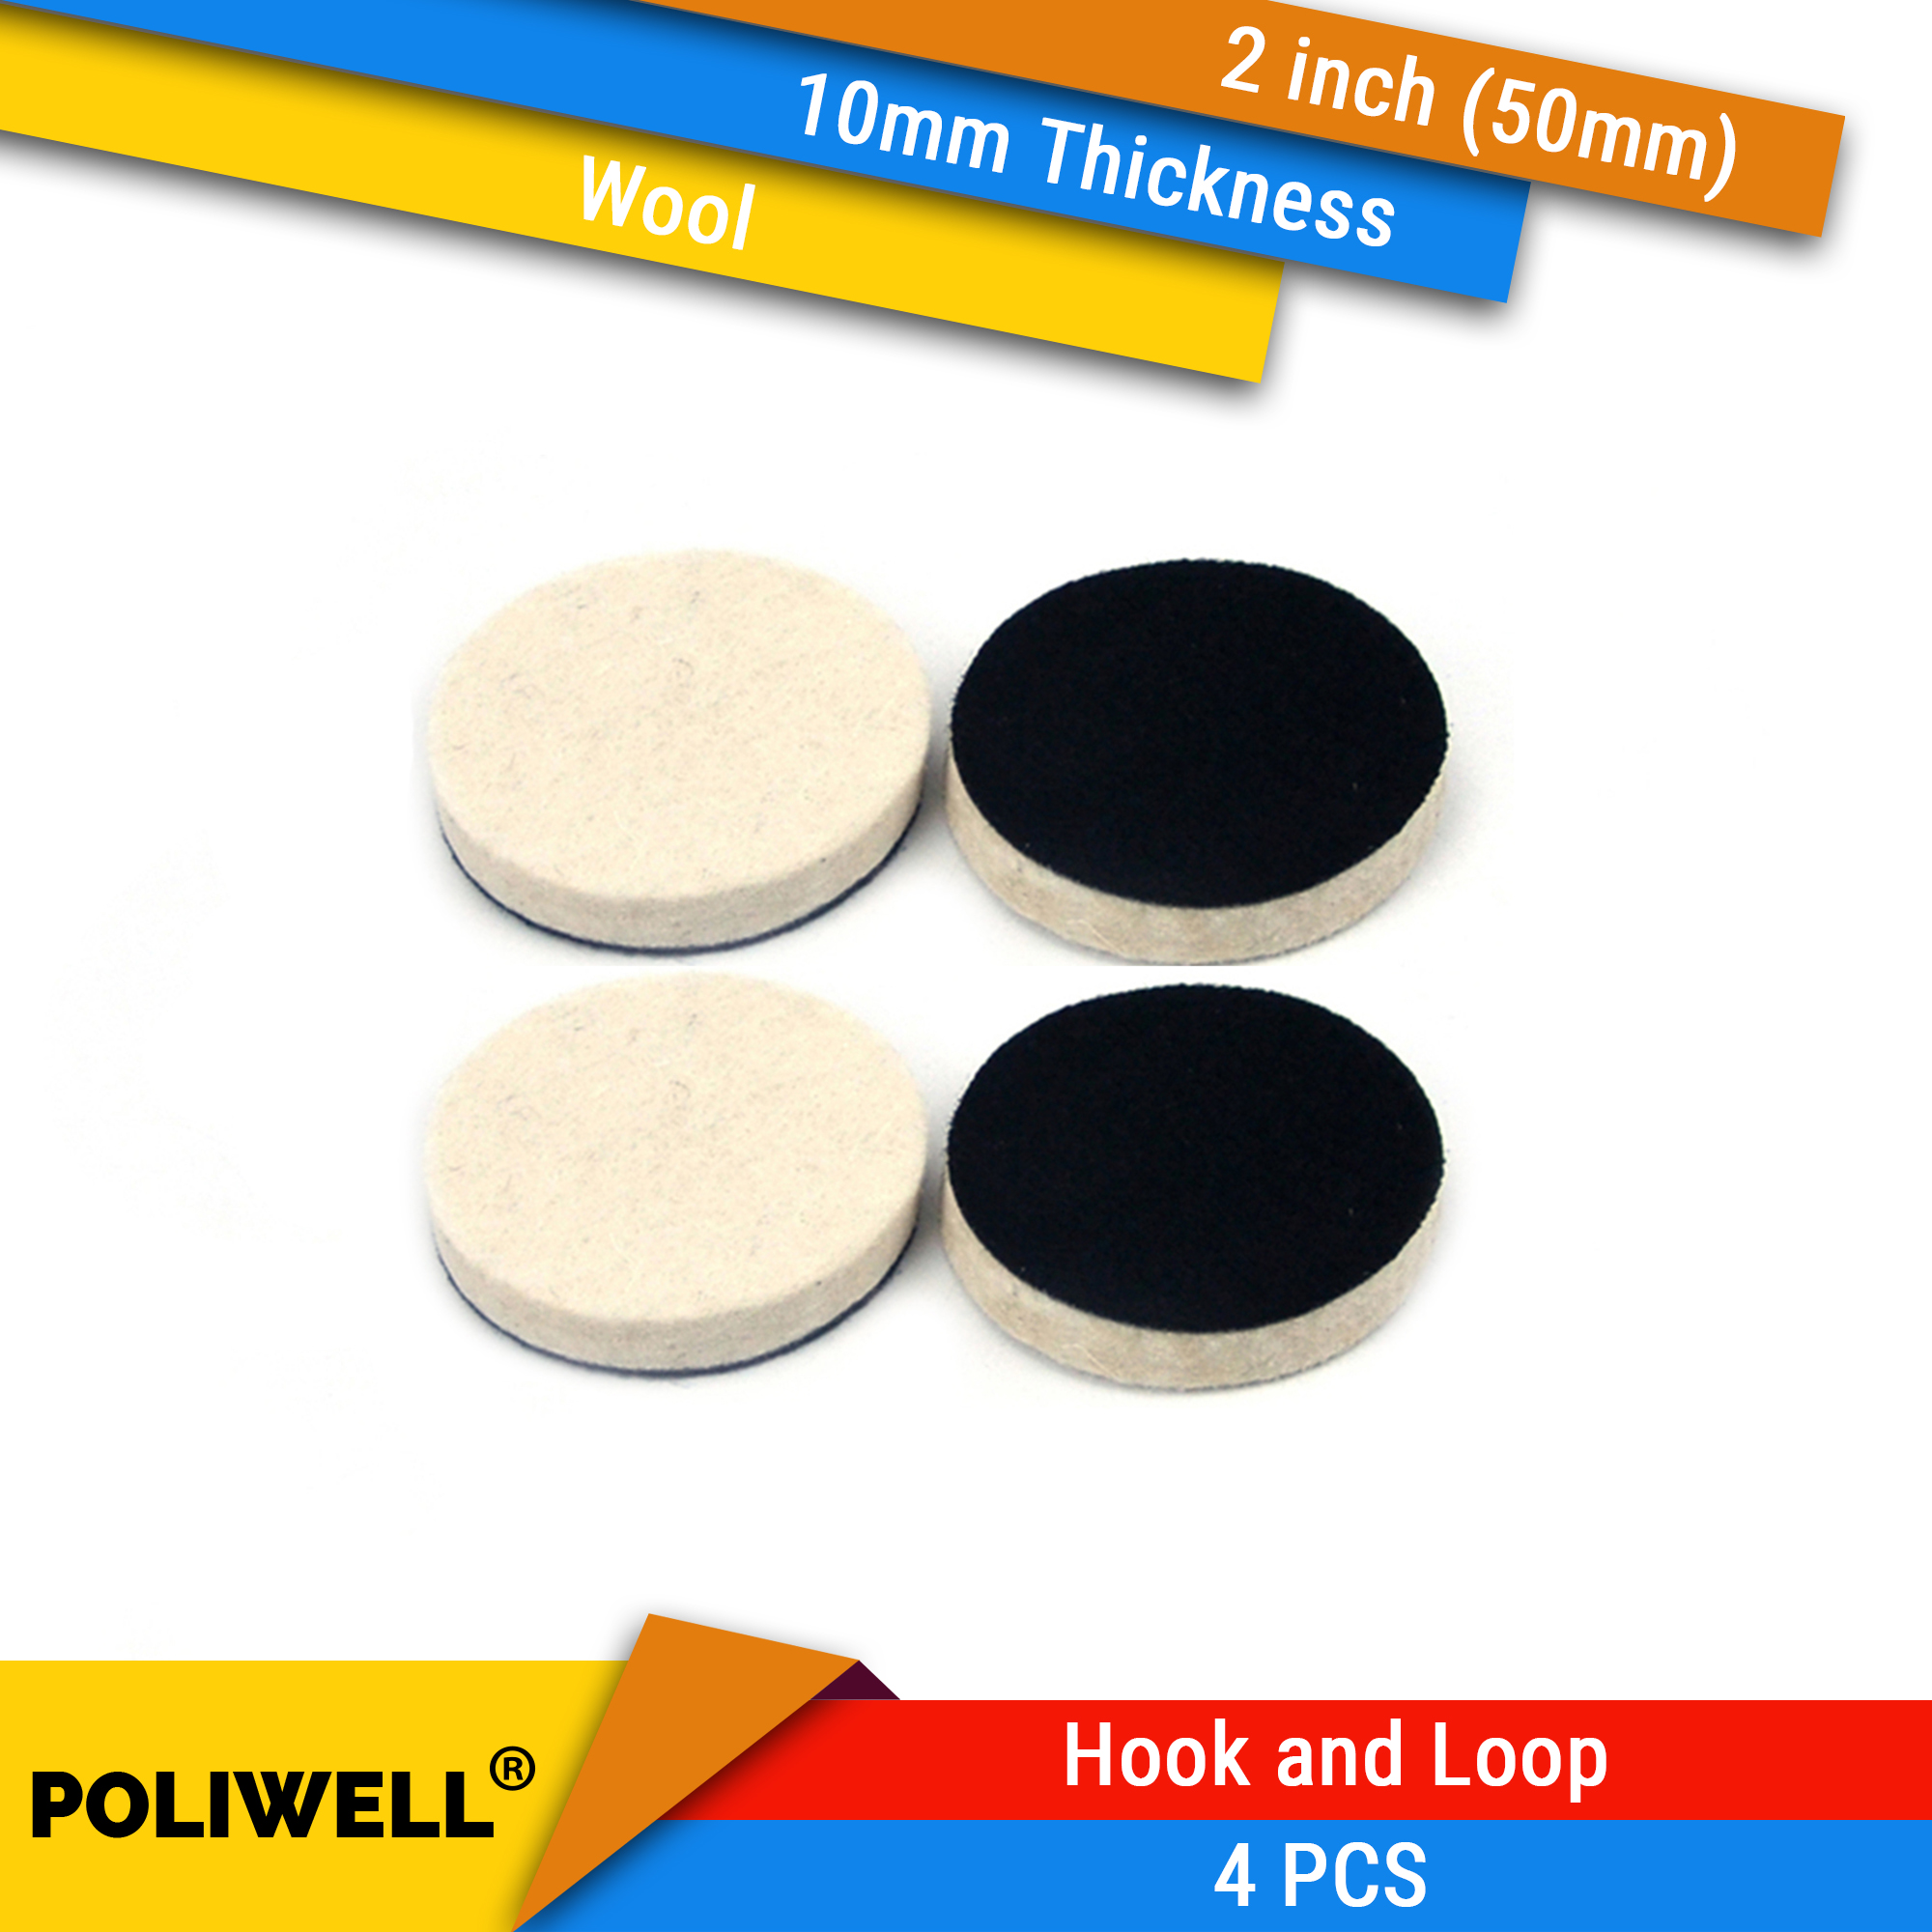 4PCS 2 Inch 50mm Round Wool Polishing Disc Flocking Backing For Sanding Pad Car Metal Grinding Polishing Power Tools Accessories